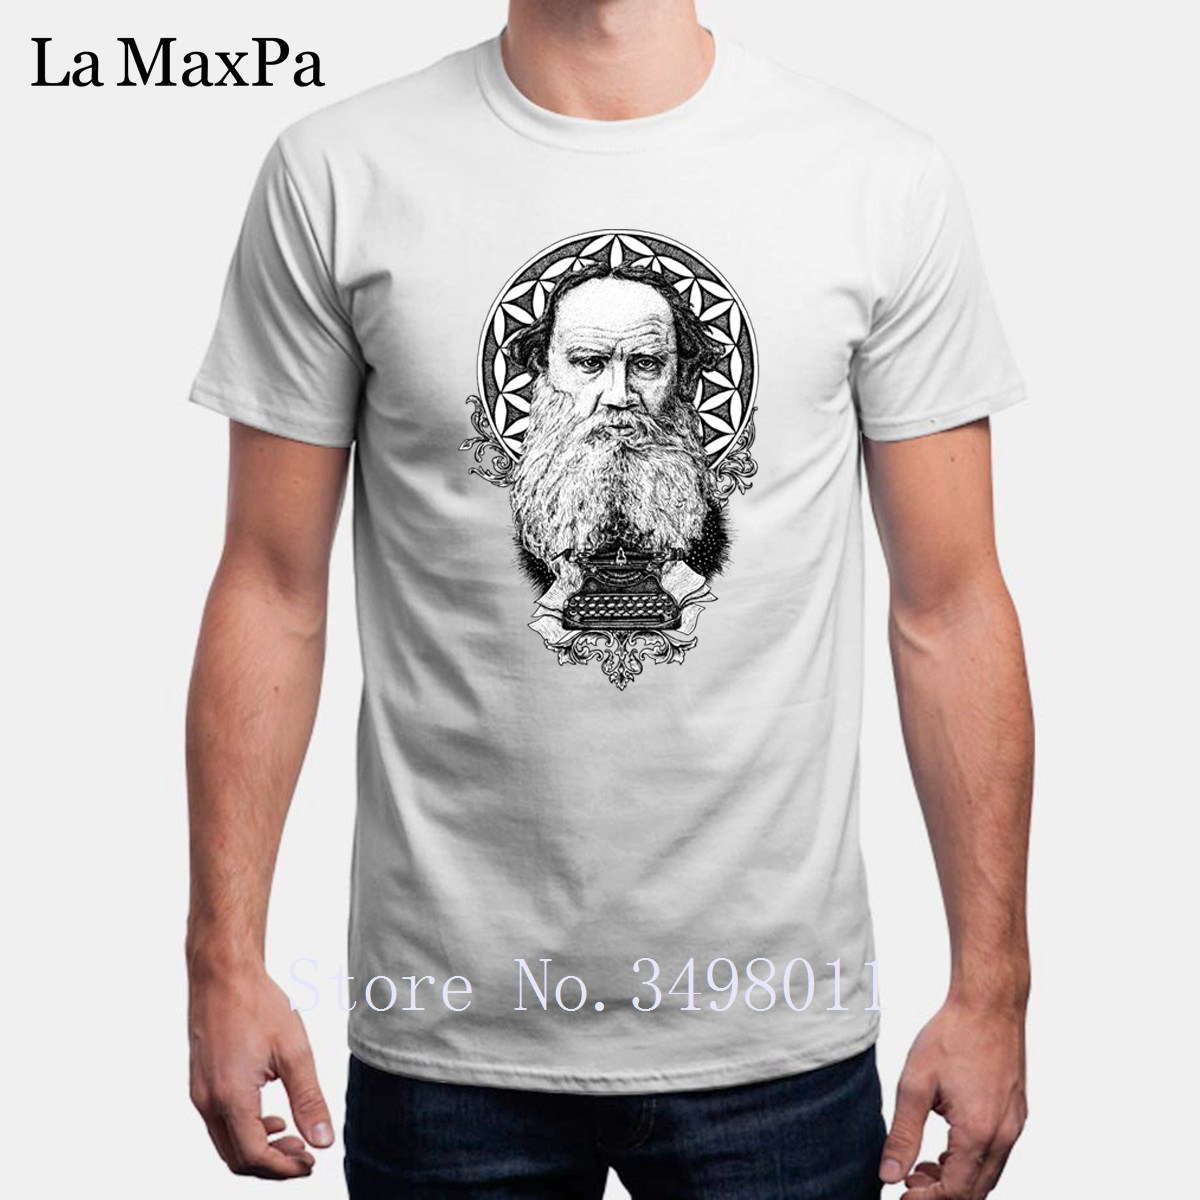 New Arrival Funny T Shirt Tolstoy Tshirt Clothes O-Neck Cool Short Sleeved T-Shirt Man S-3xl Hip Hop Impresion Camisetas